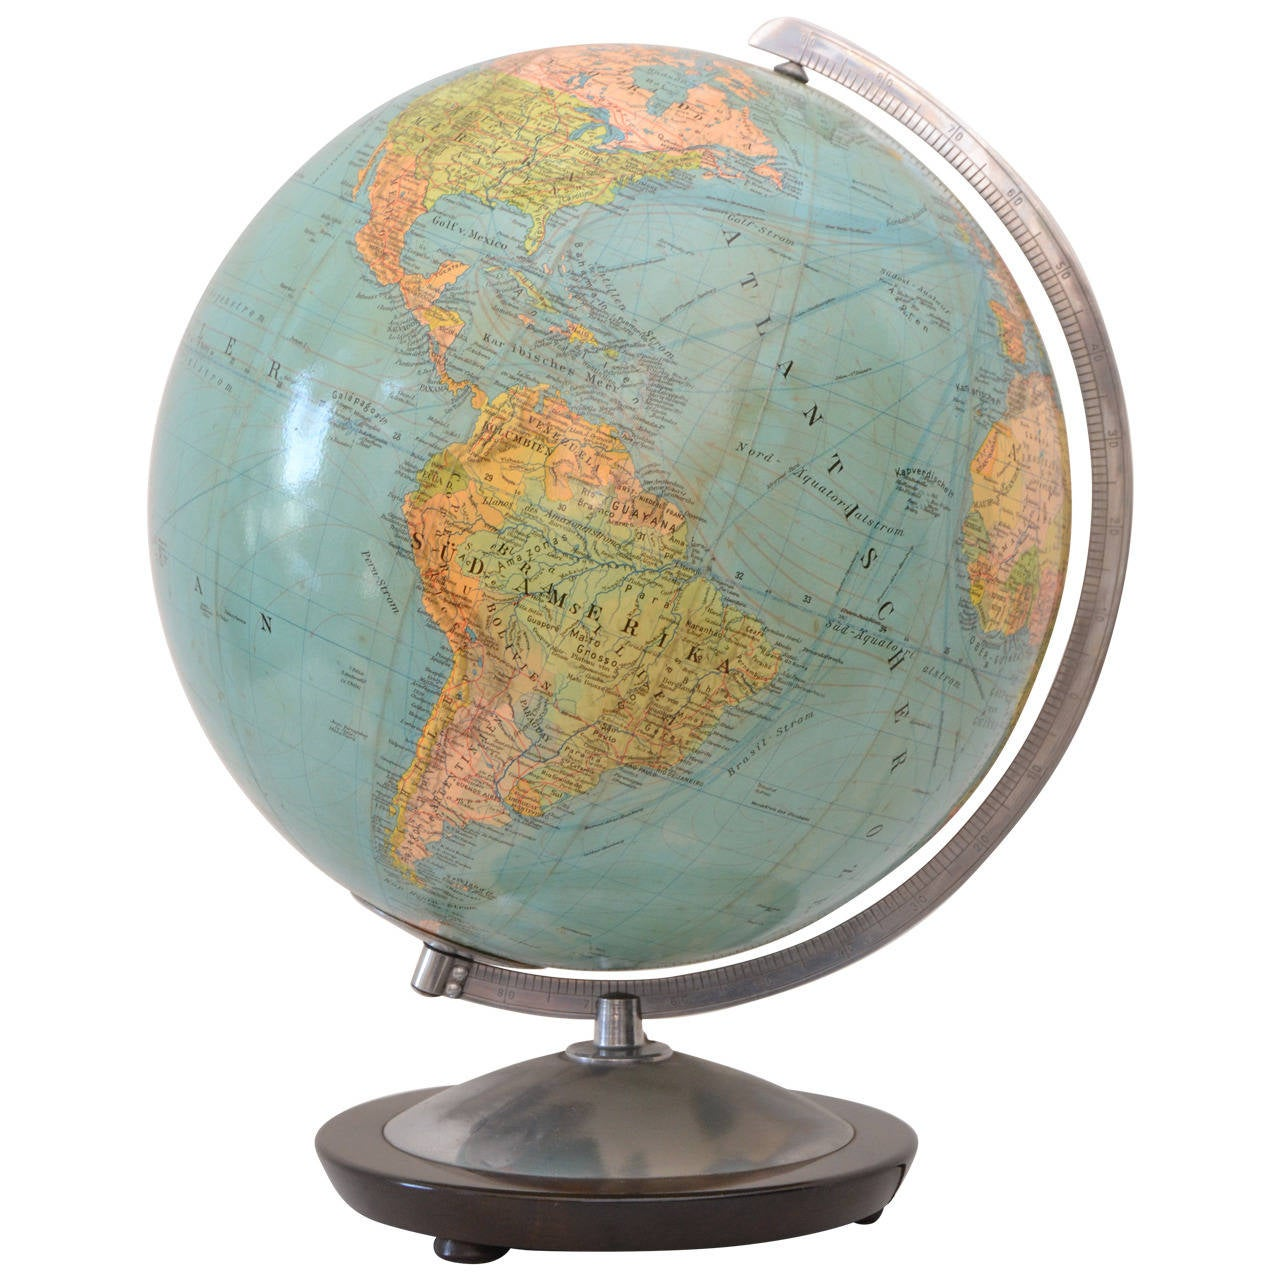 Globe with Nice Warm Glow, made in Germany, 1950s